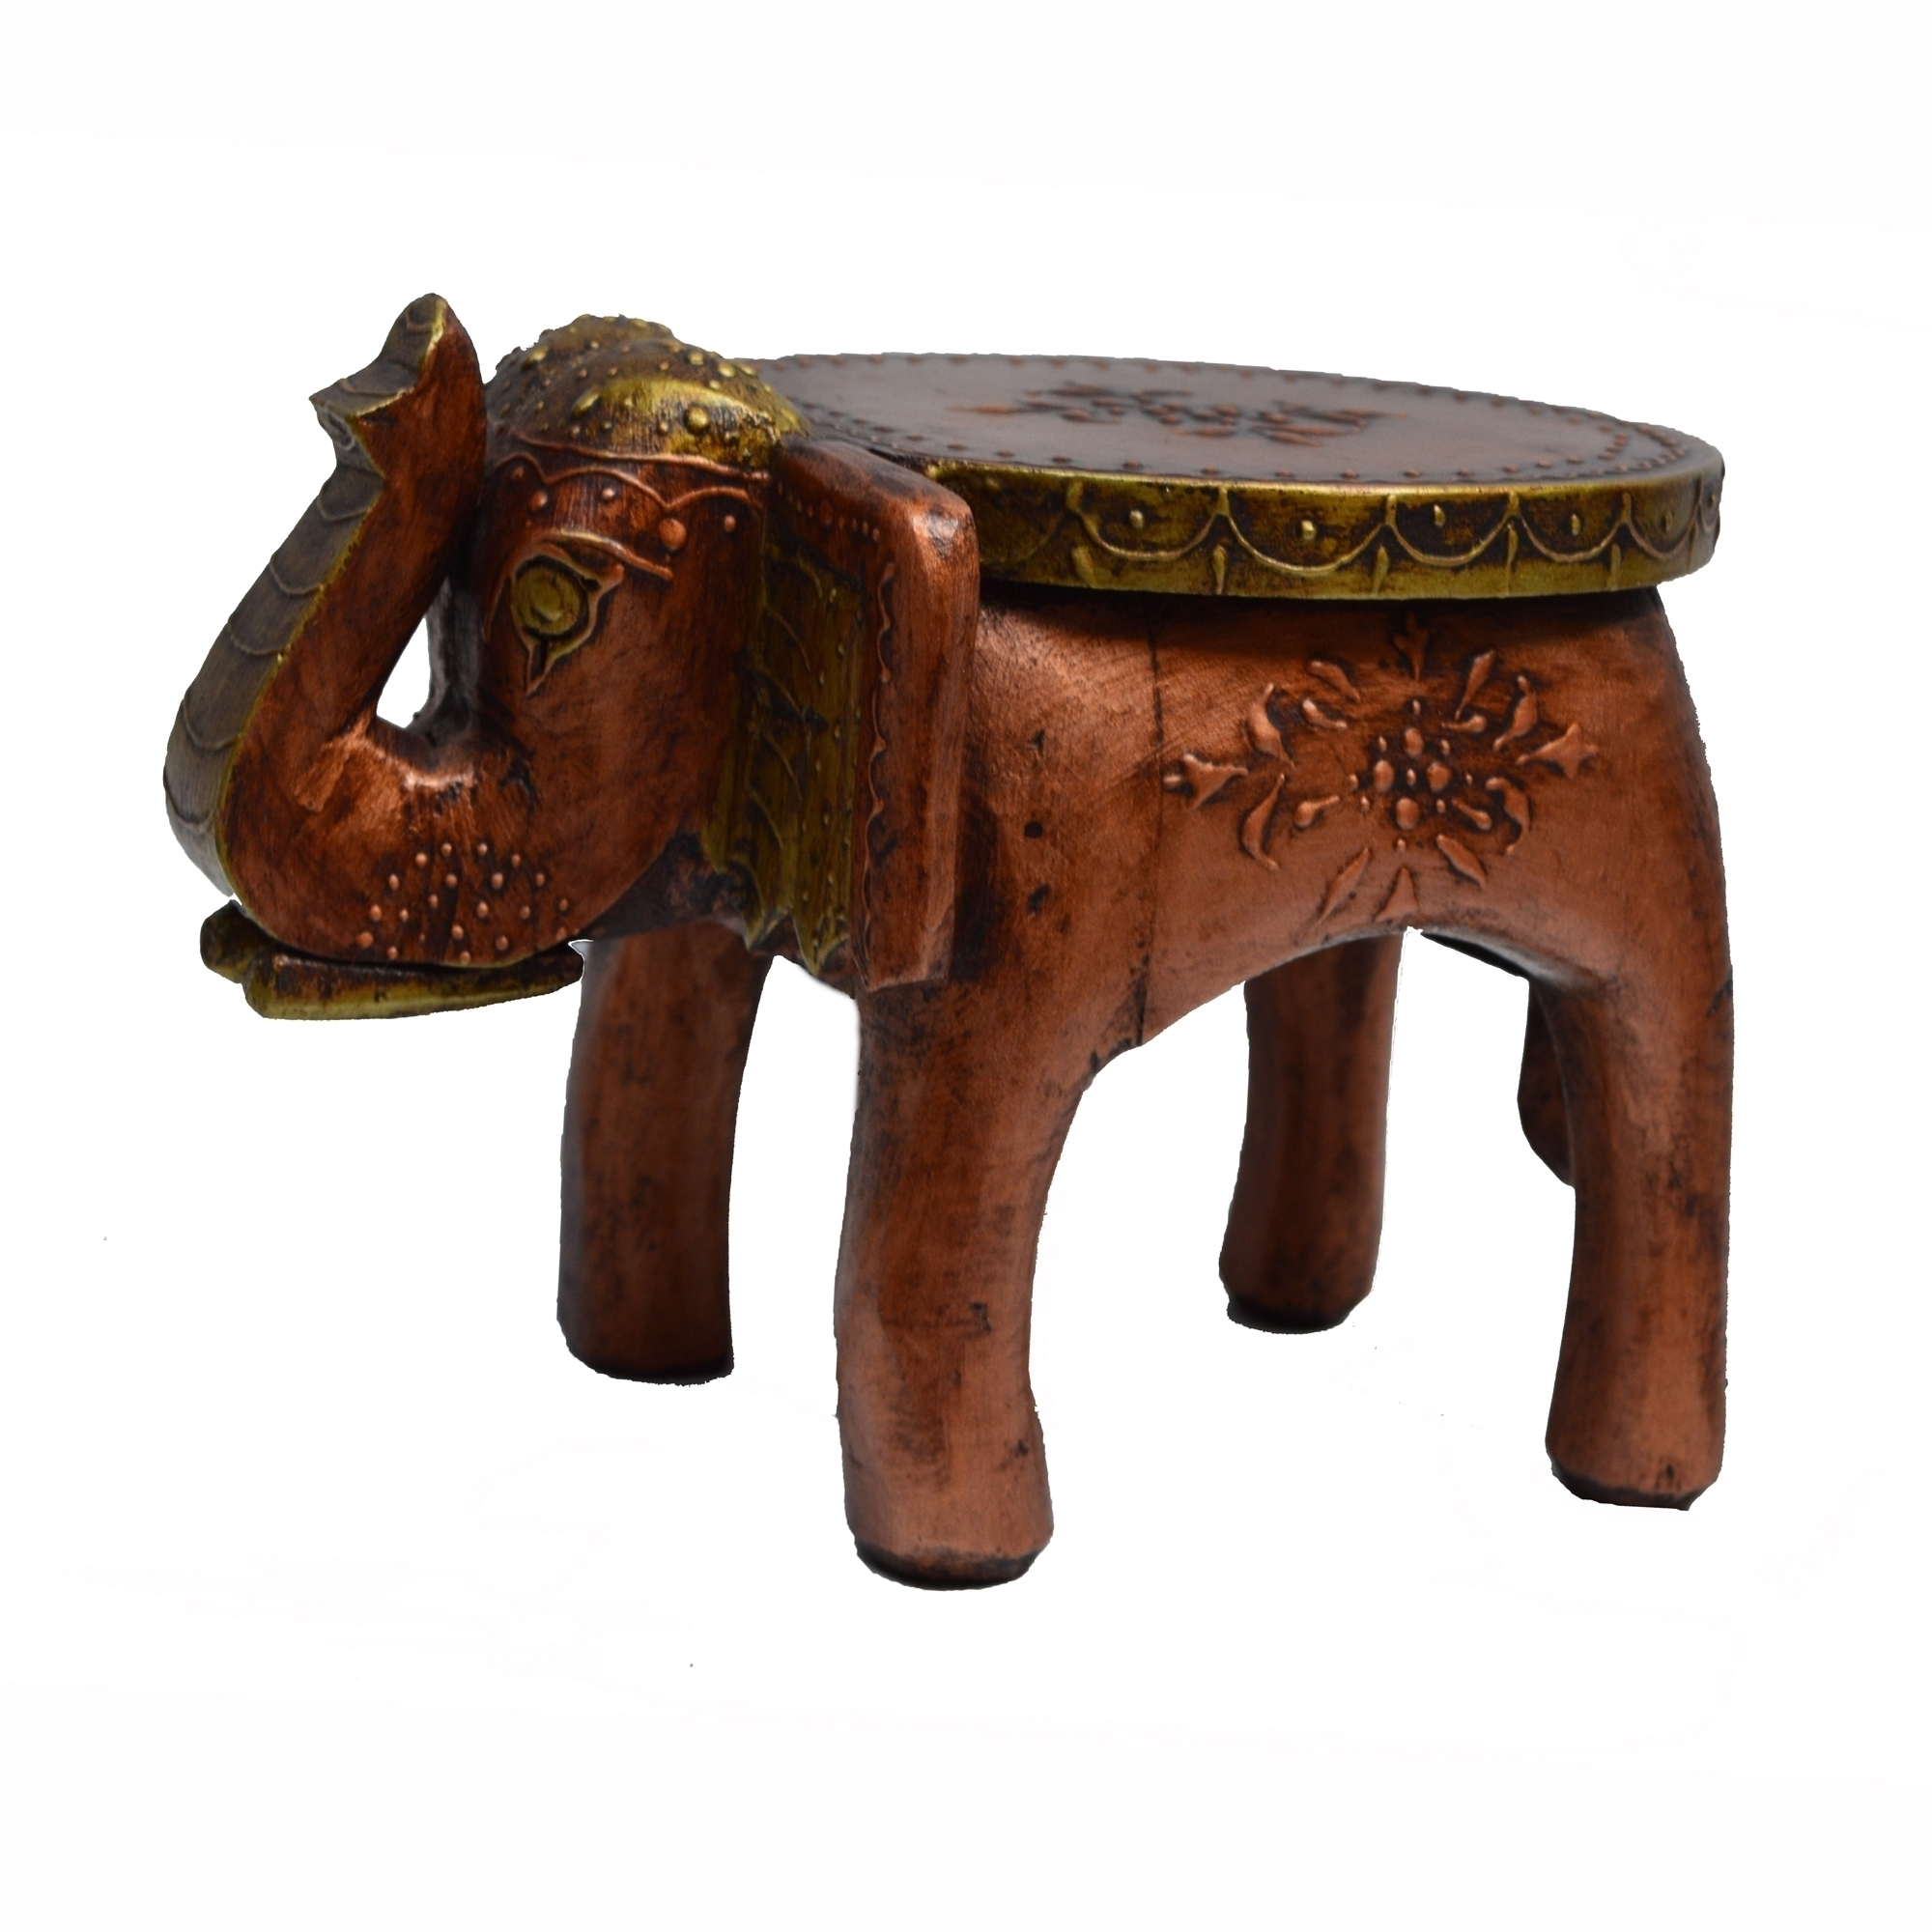 Wooden Elephant Stool for Decoratives Indian Home Decor